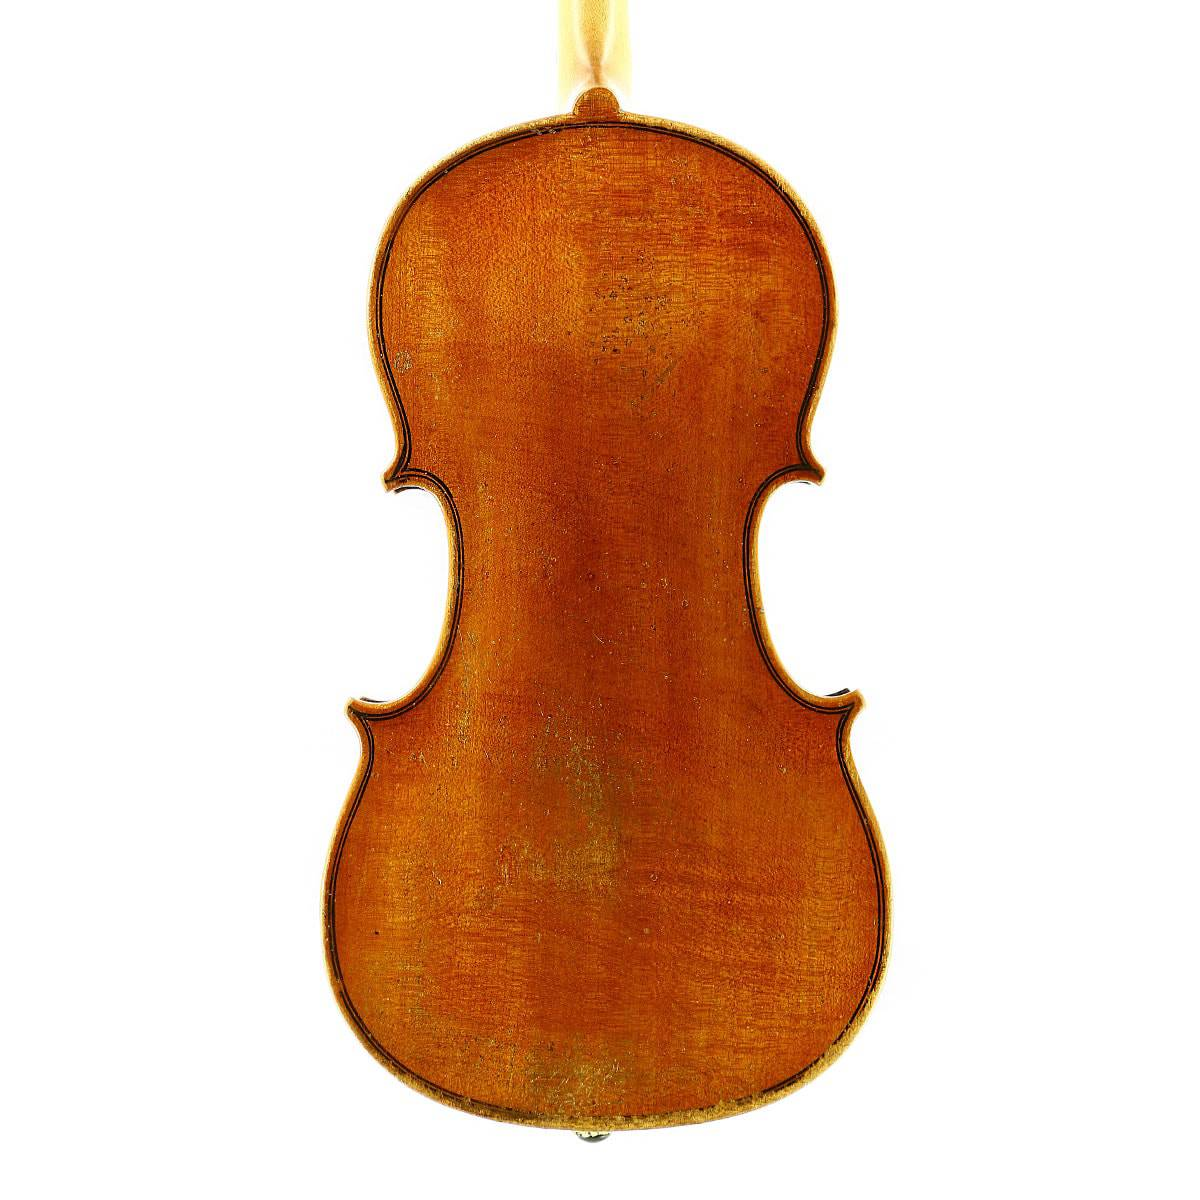 How to Tell If You Have an Antique Violin